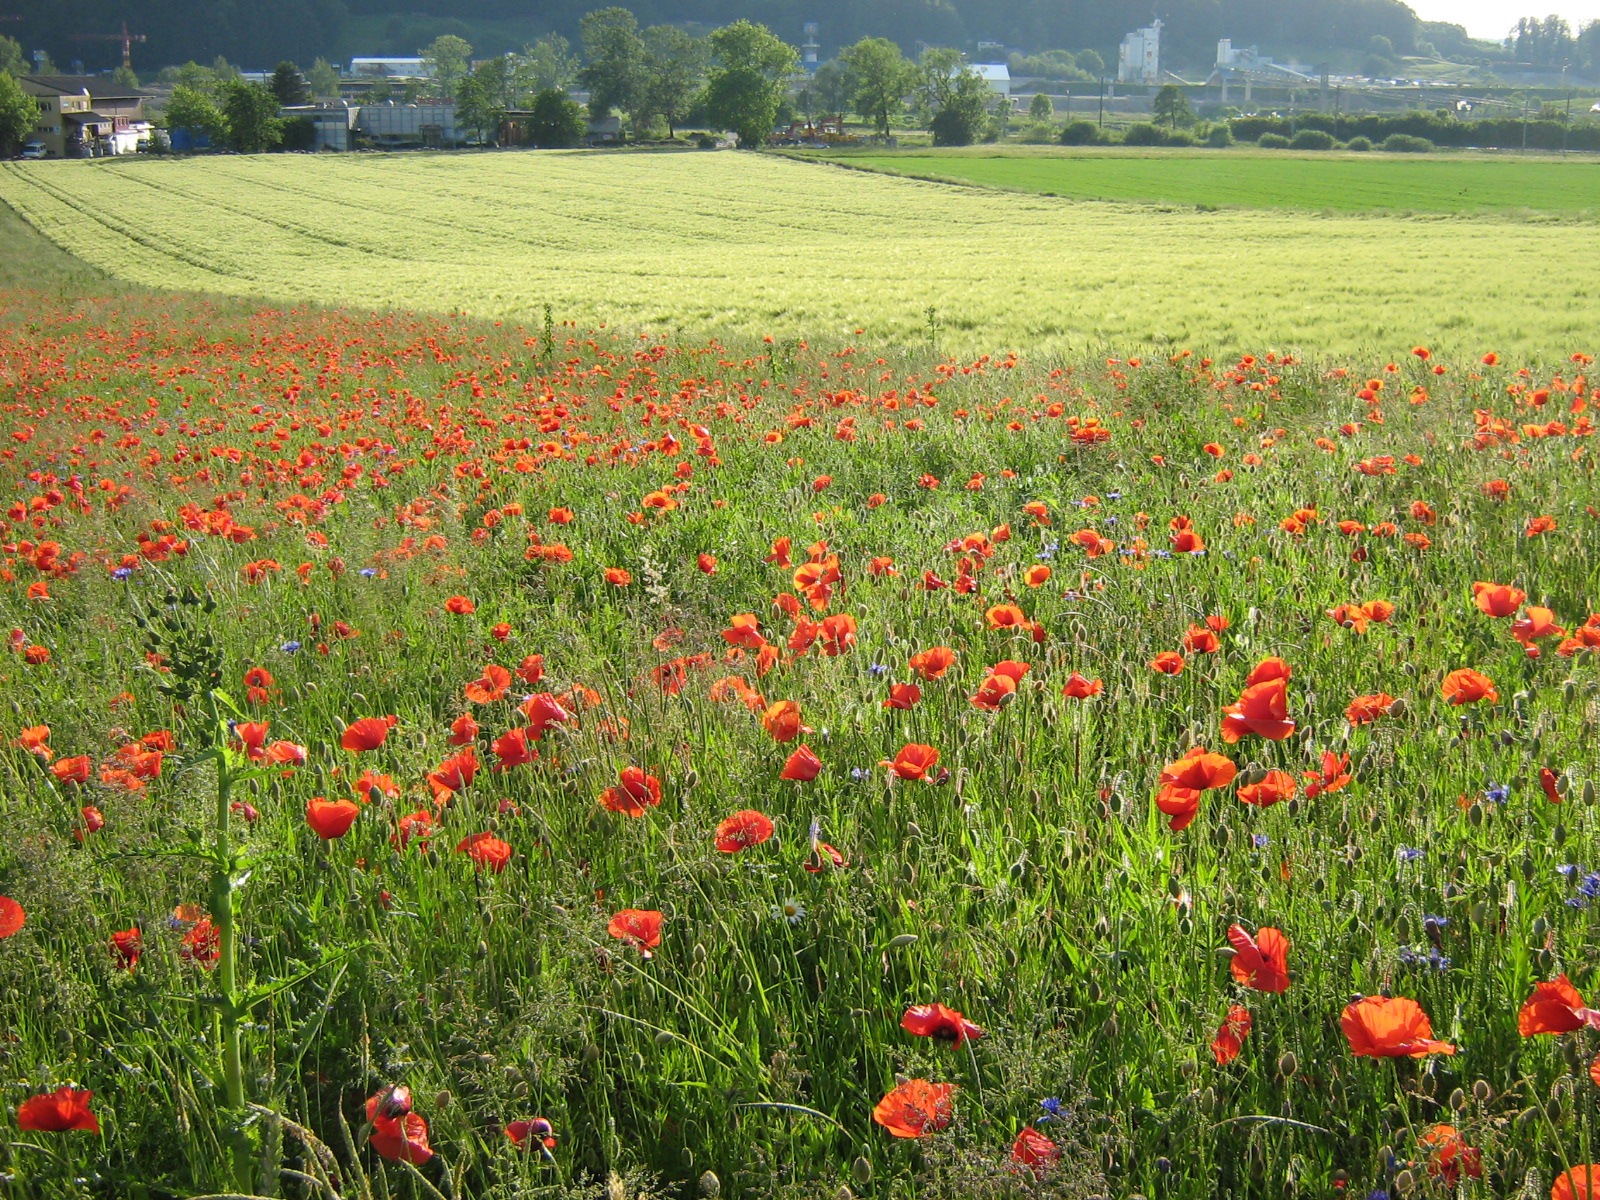 Global biodiversity in crisis - what can Germany and the EU do about it?